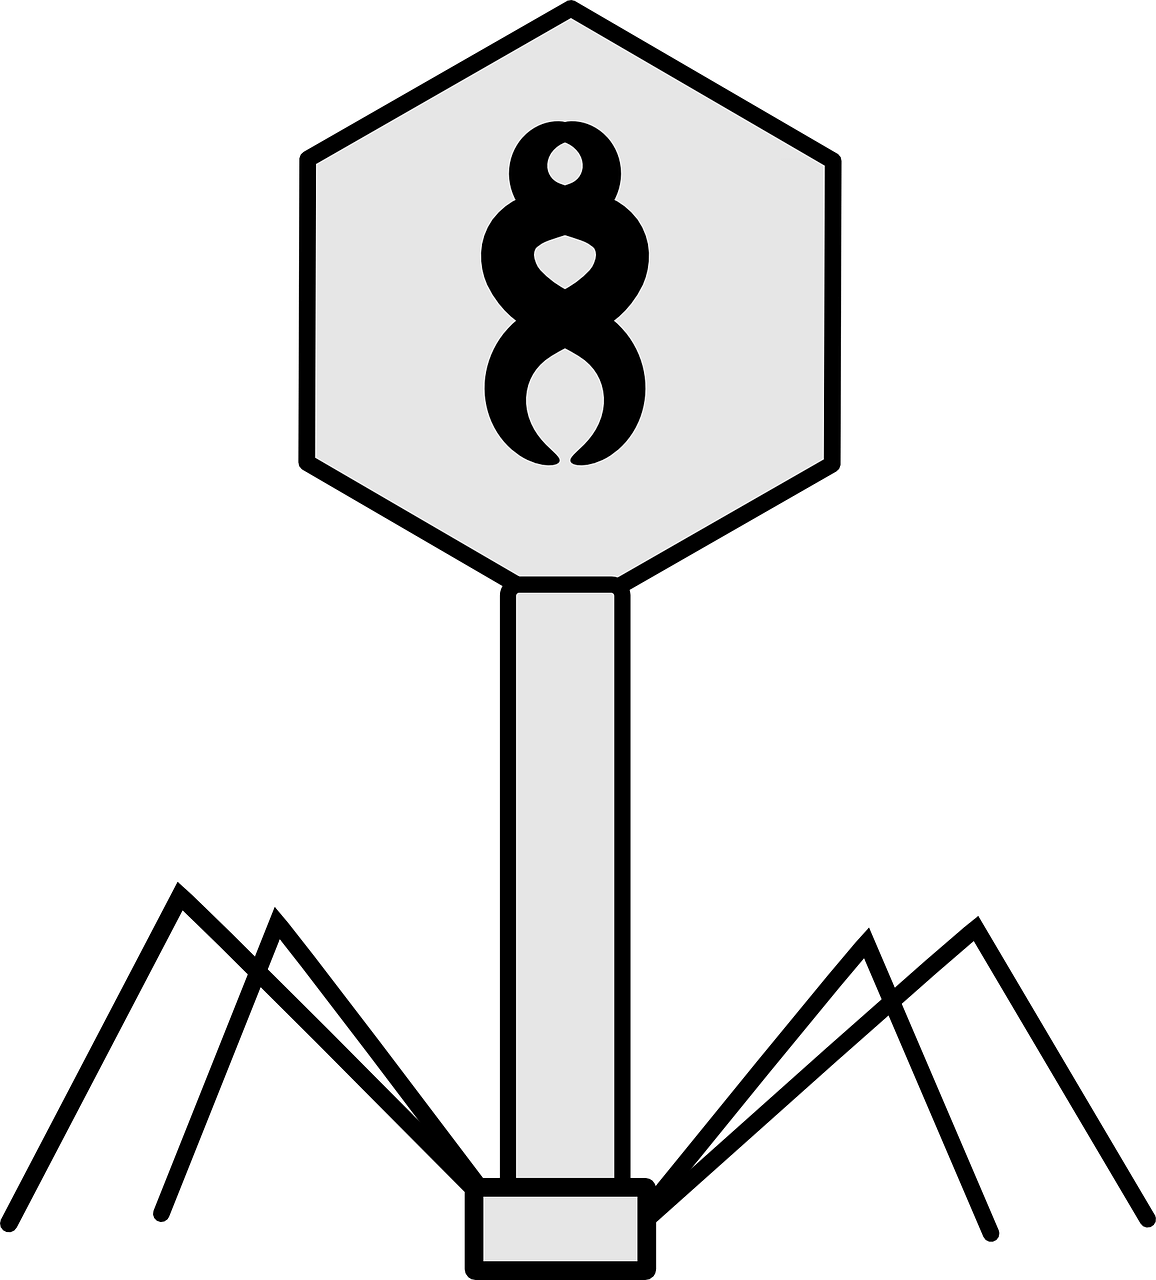 Virus Bacteriophage Science Biology Structure